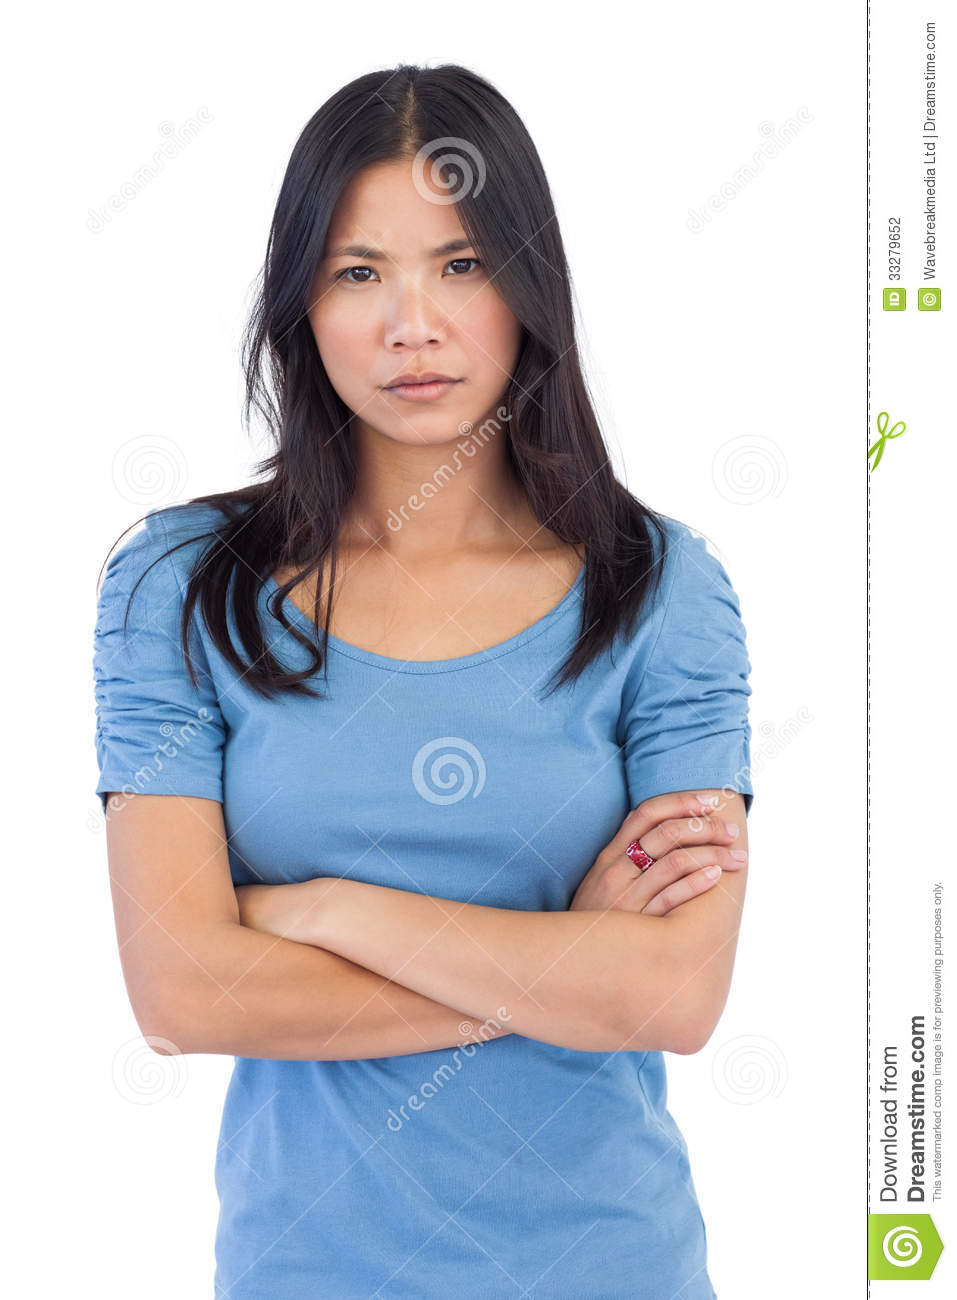 Annoyed asian woman with arms crossed